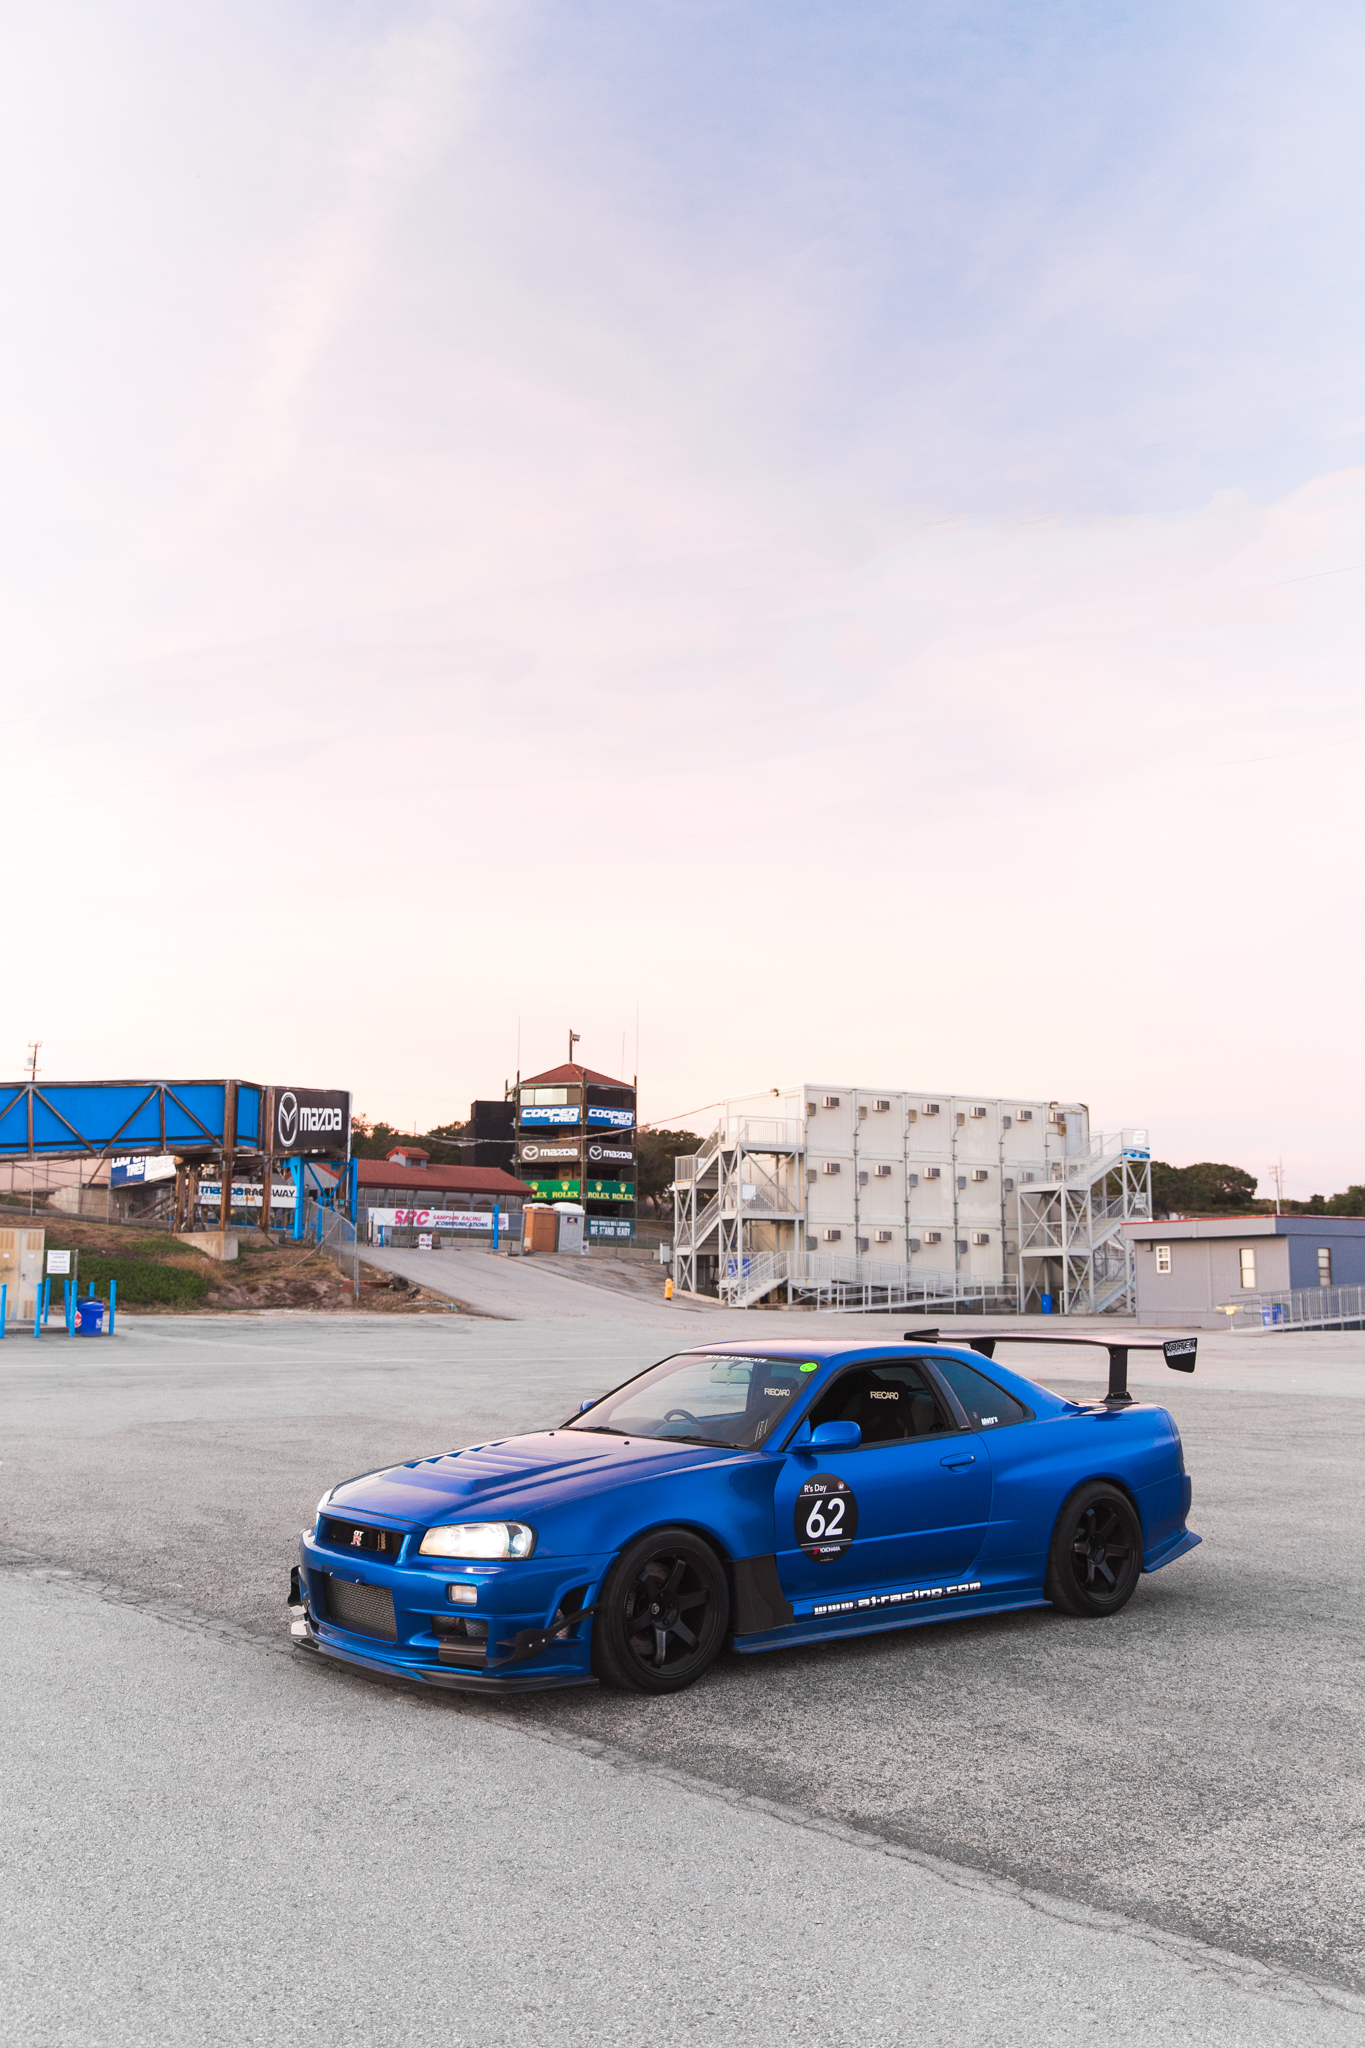 Stay_Driven_Rs_Day-157.jpg